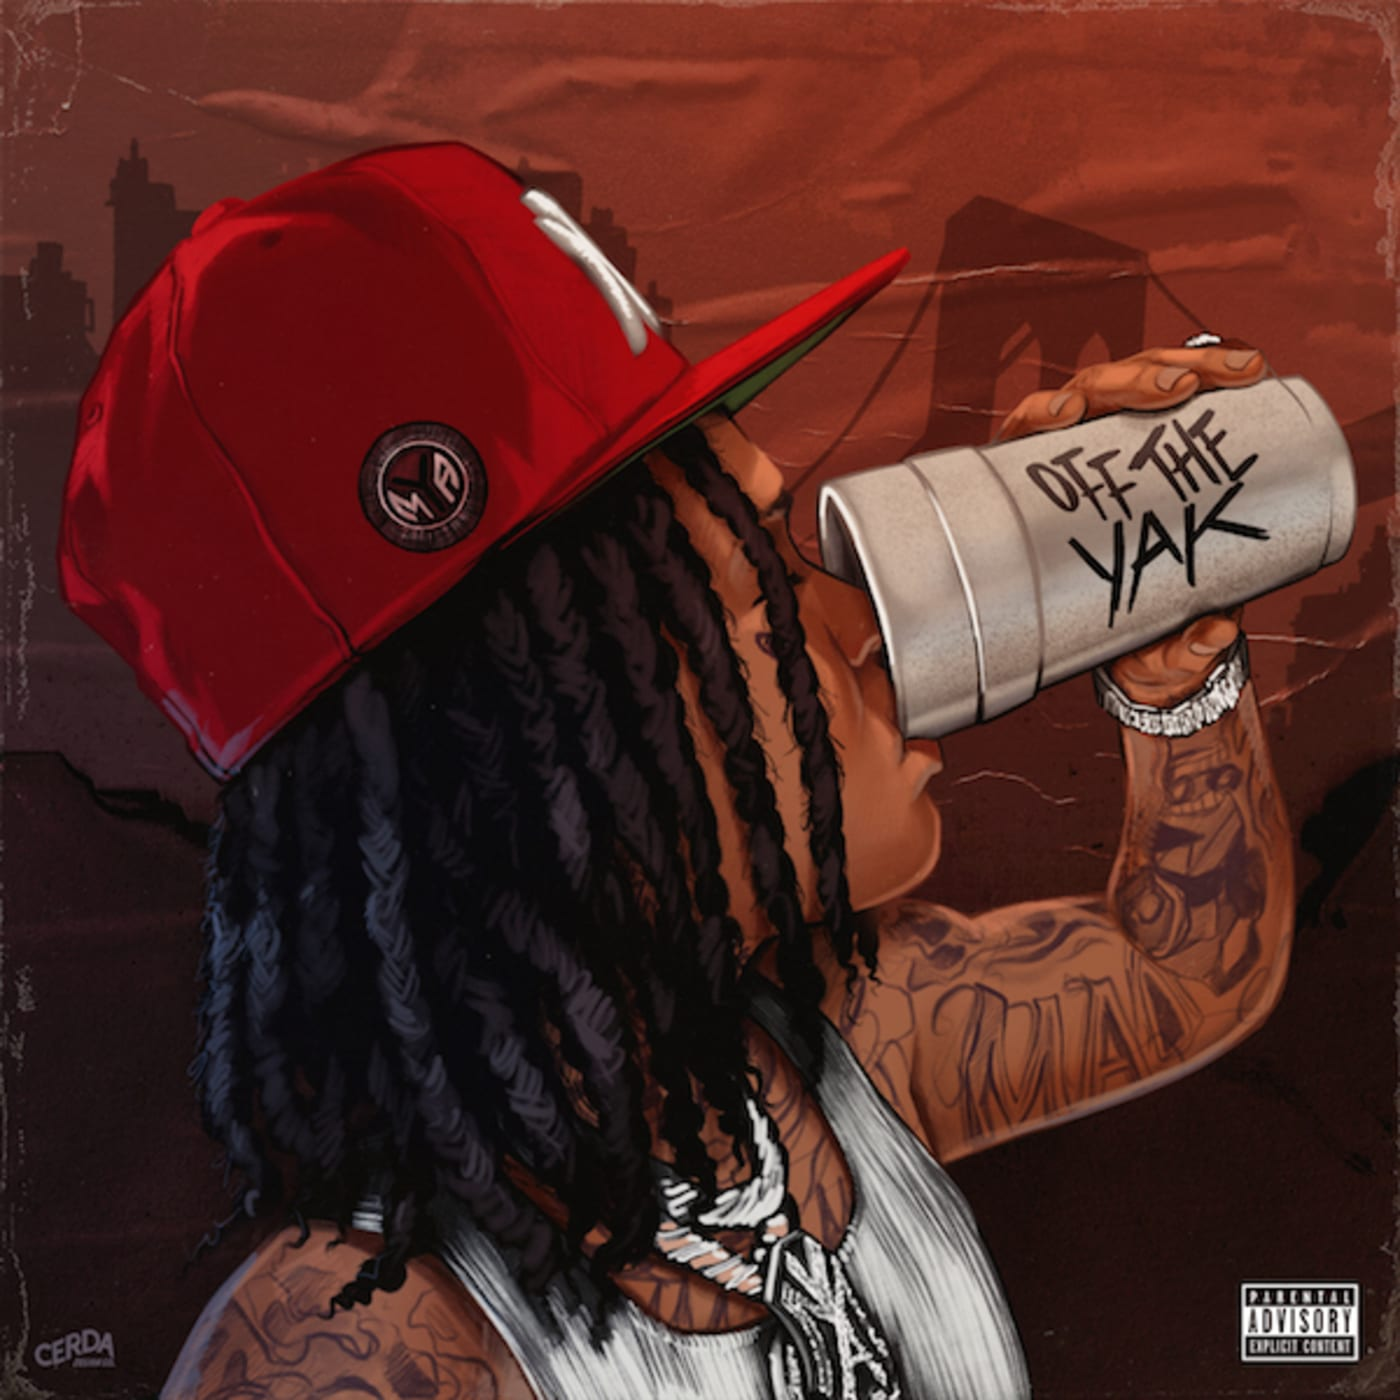 Young M.A—'Off the Yak'